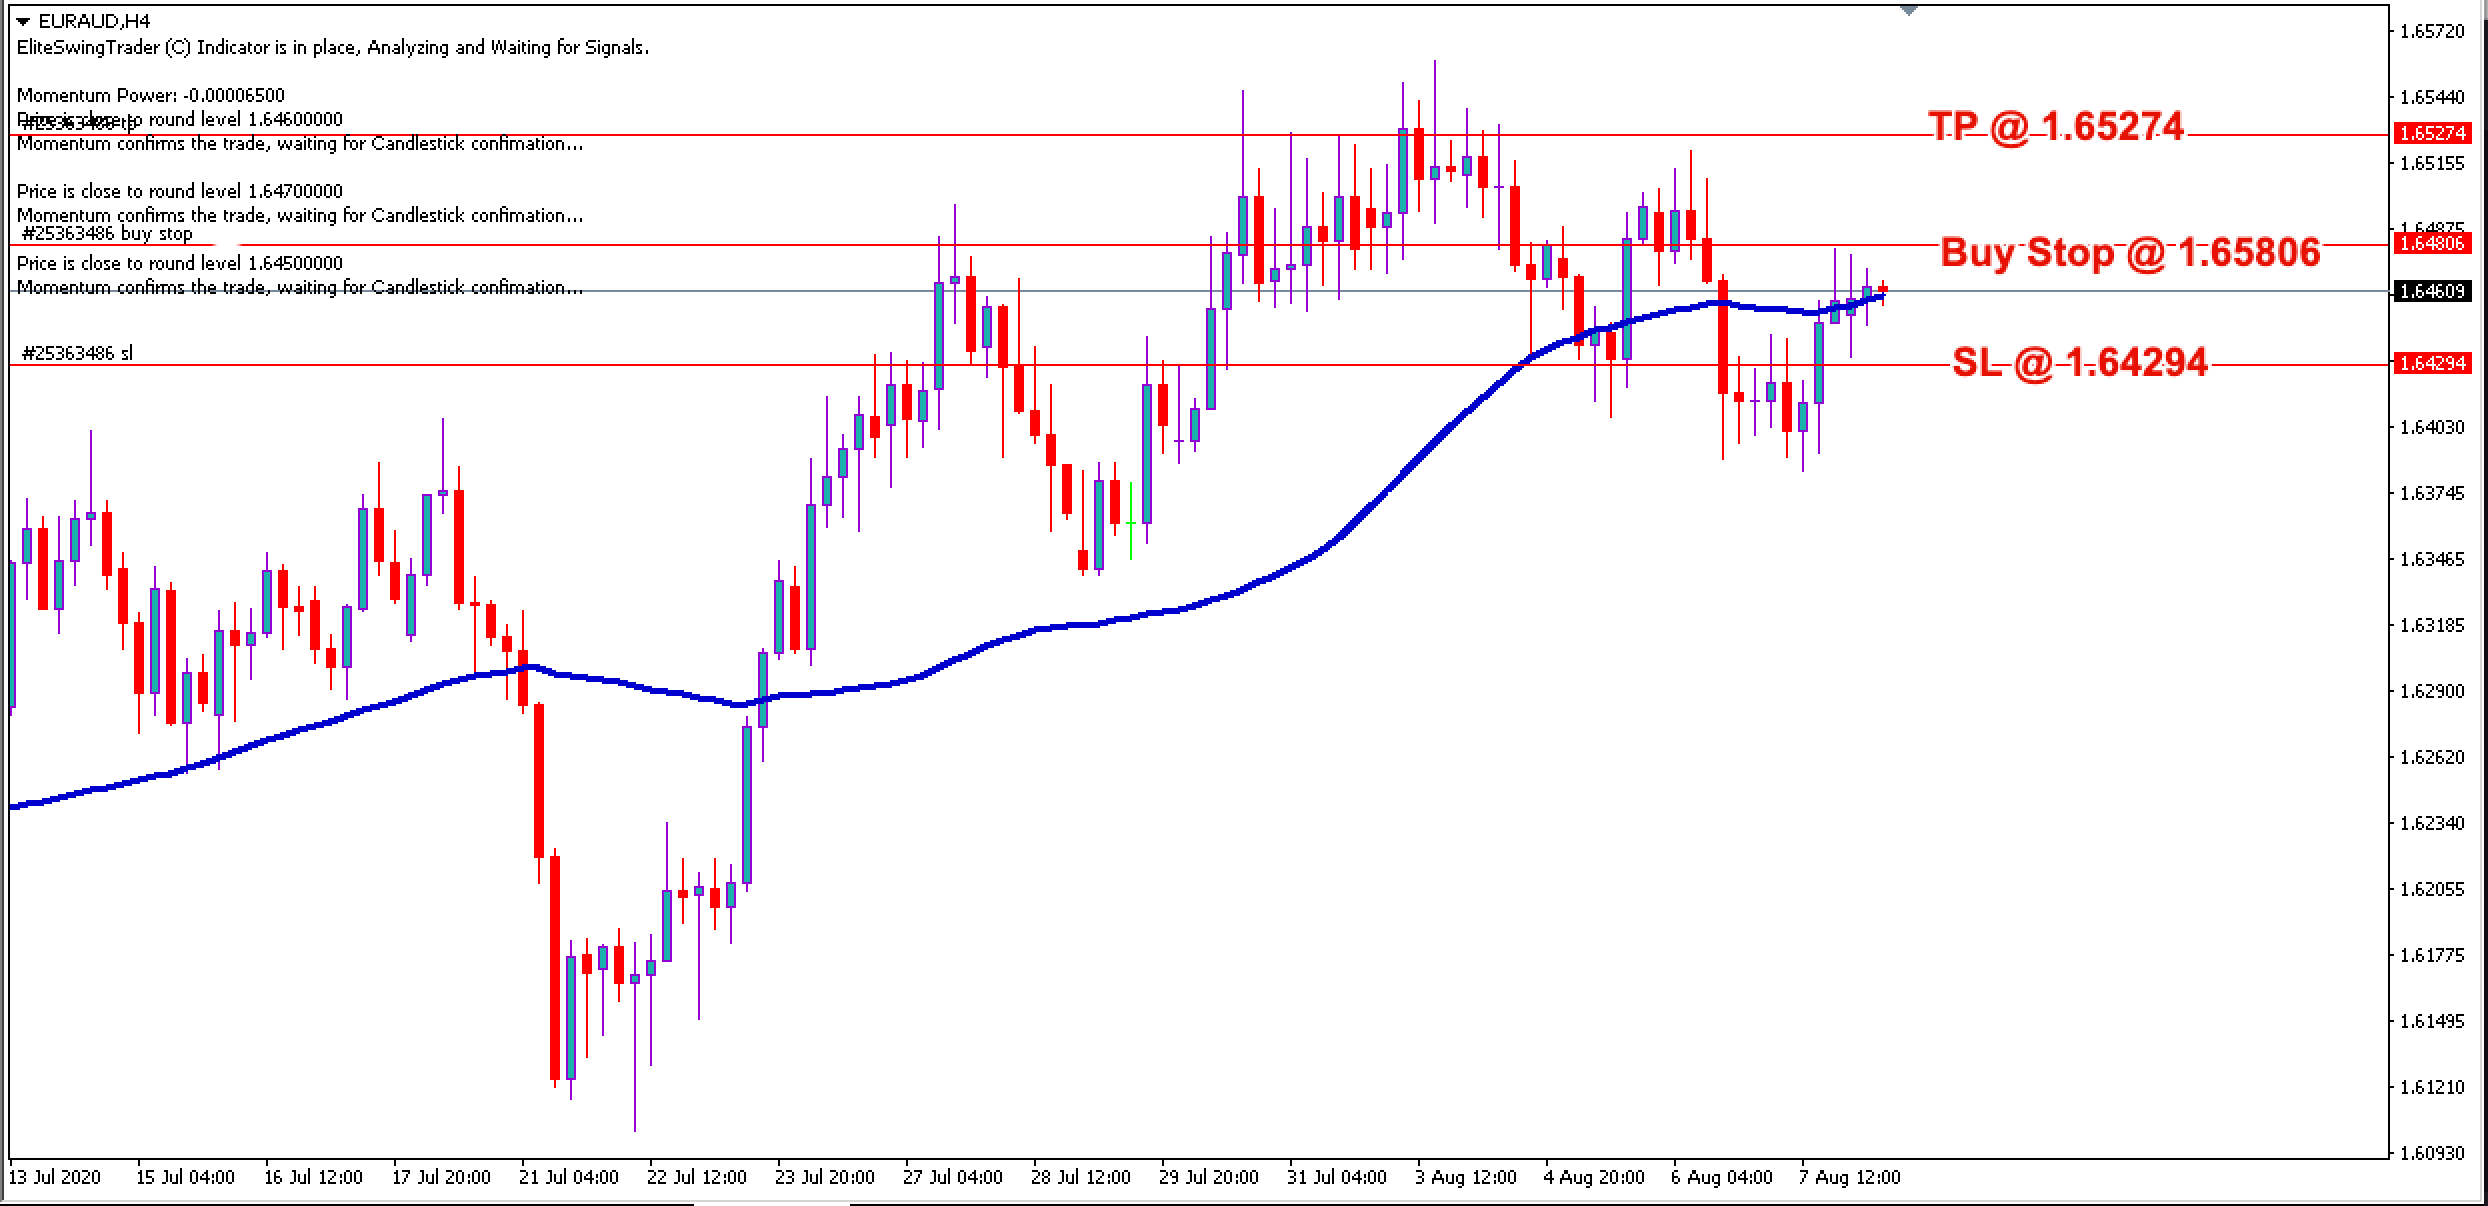 EUR/AUD Daily Price Forecast - 10th August 2020